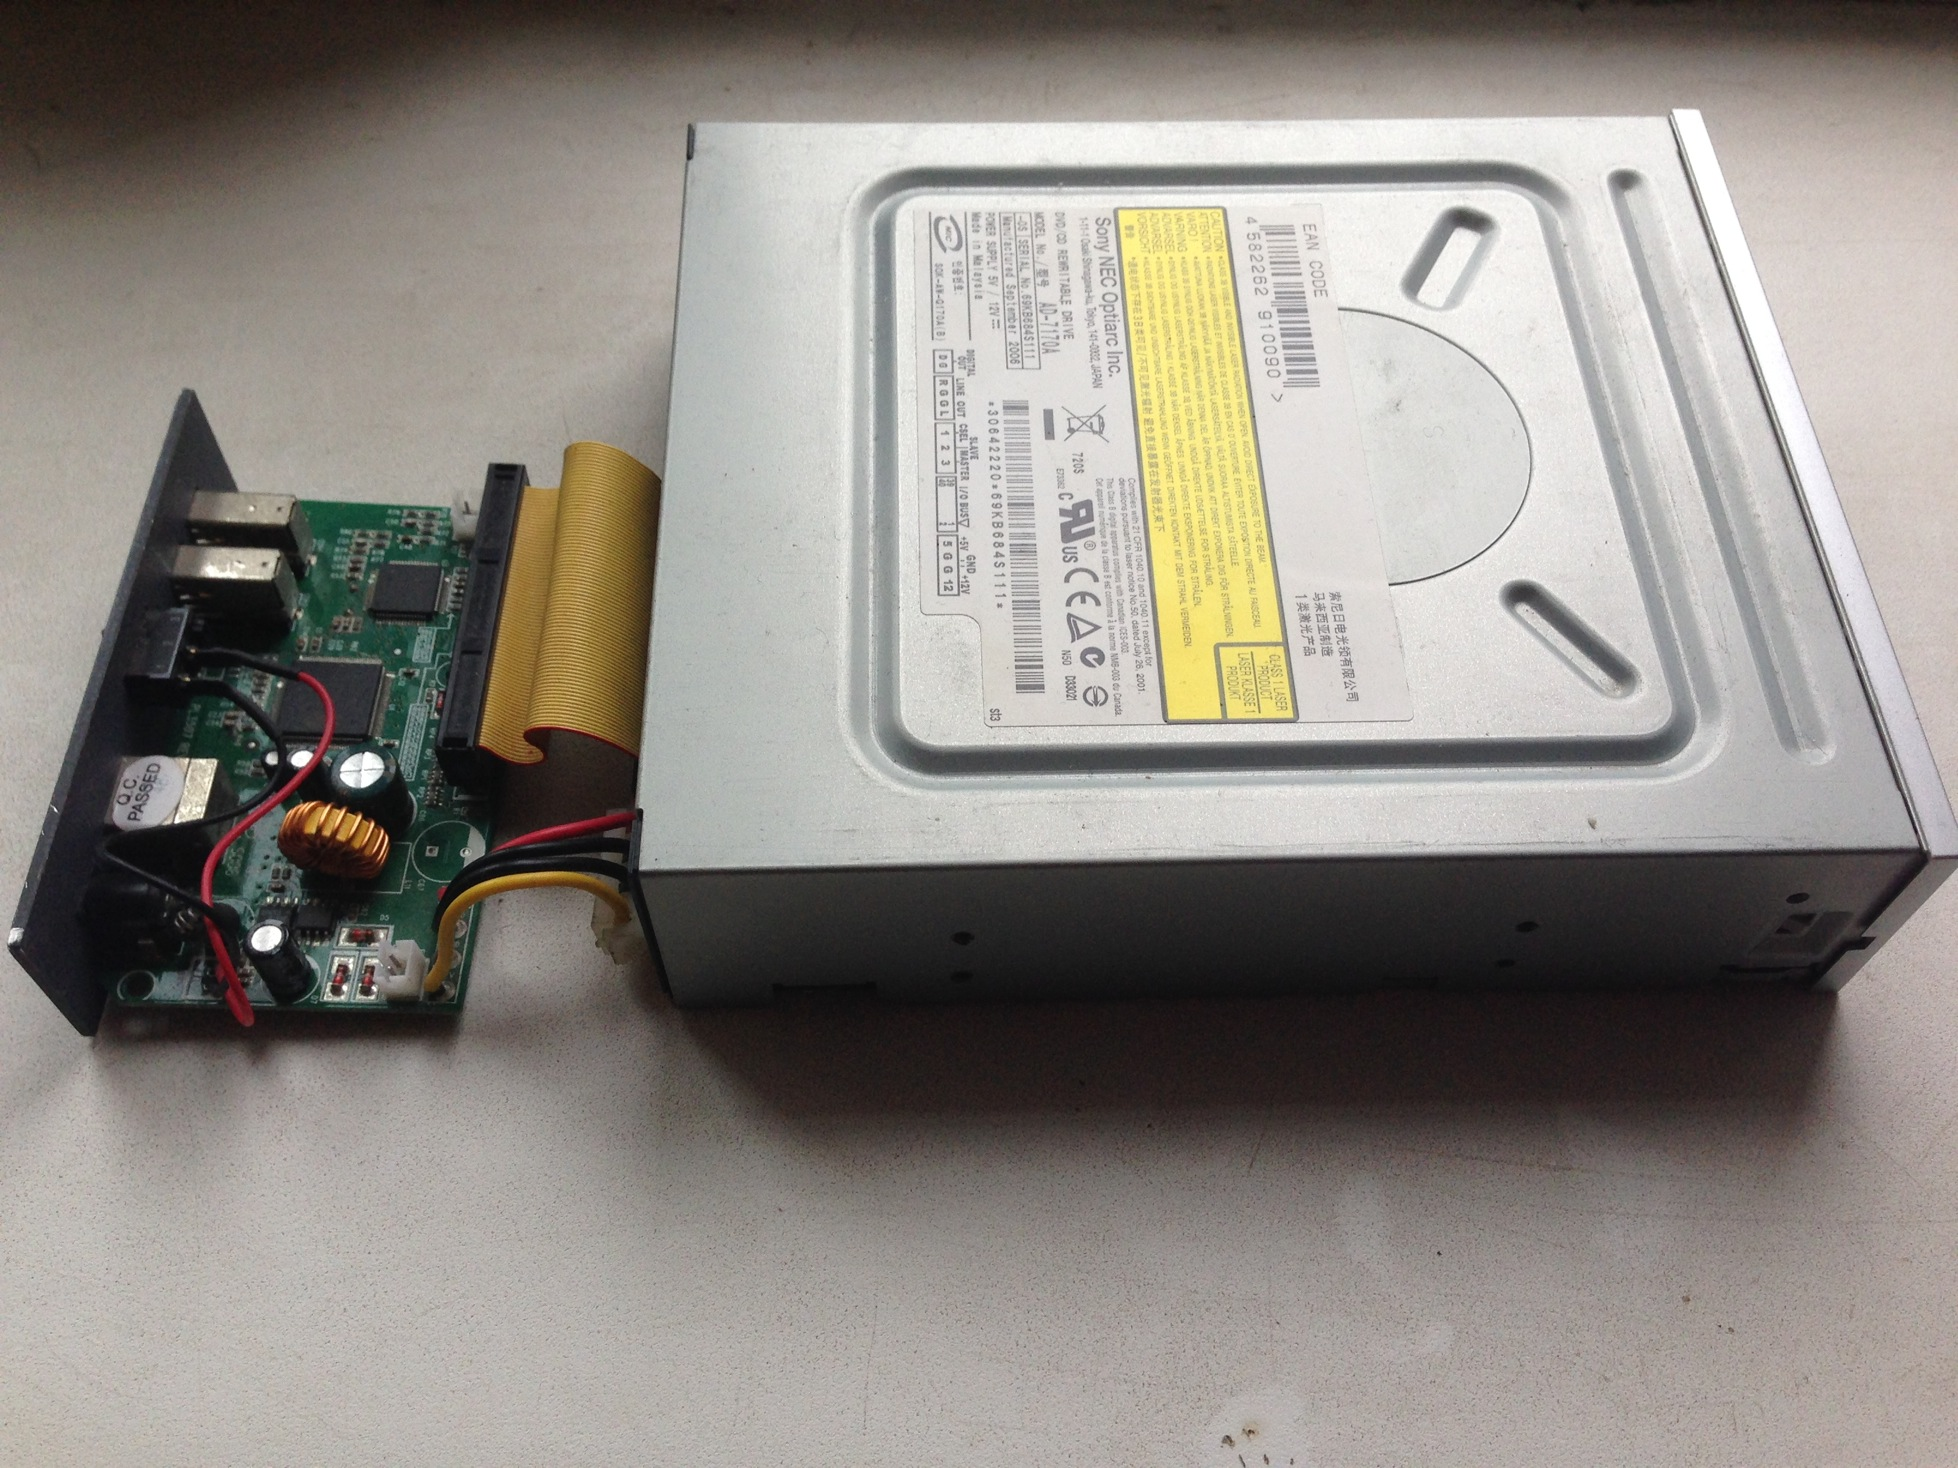 External optical disk drive from the external HDD drive